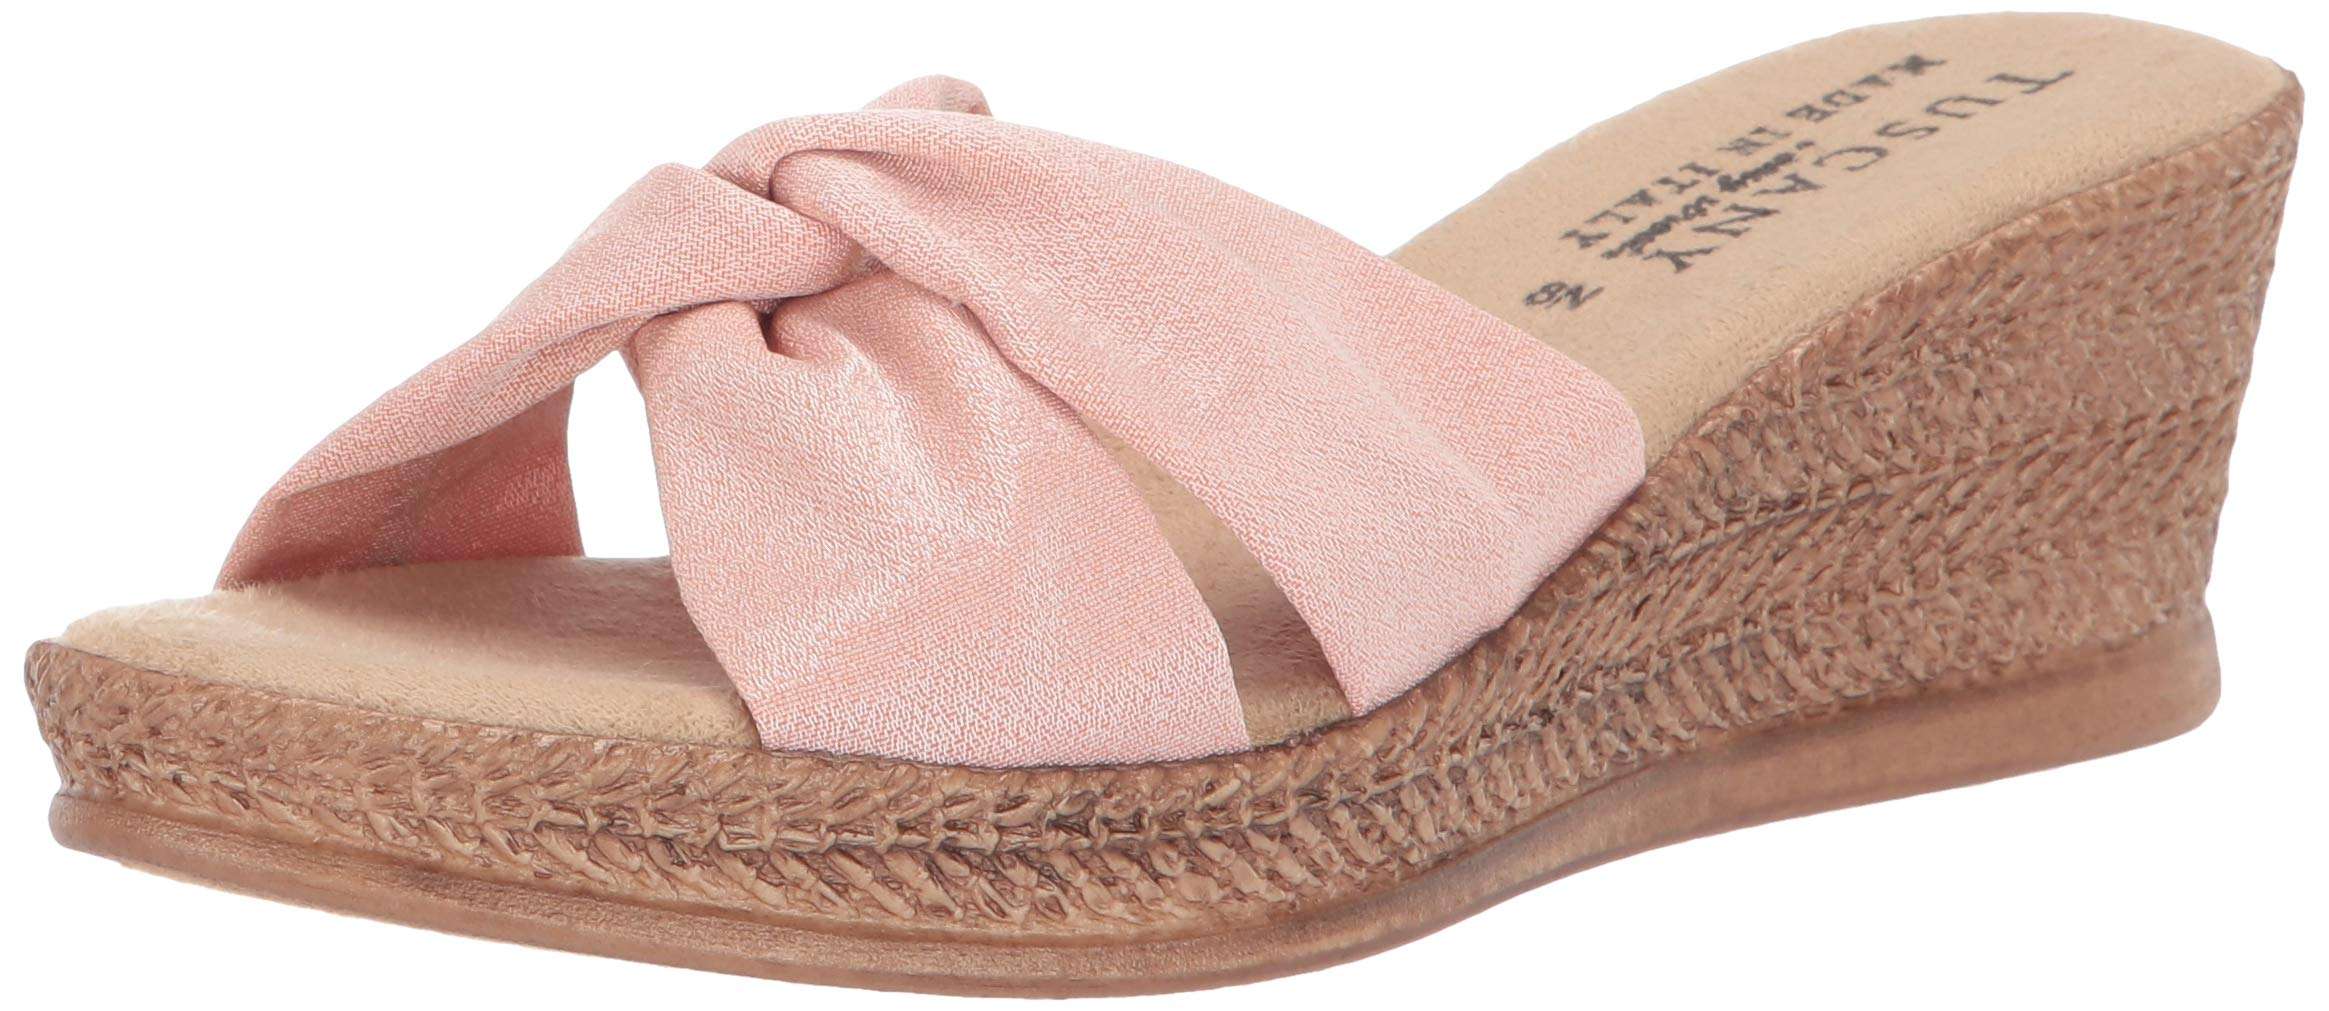 Easy Street Tuscany Women's Dinah Wedge Sandal, Blush, 6 2W US by Easy Street